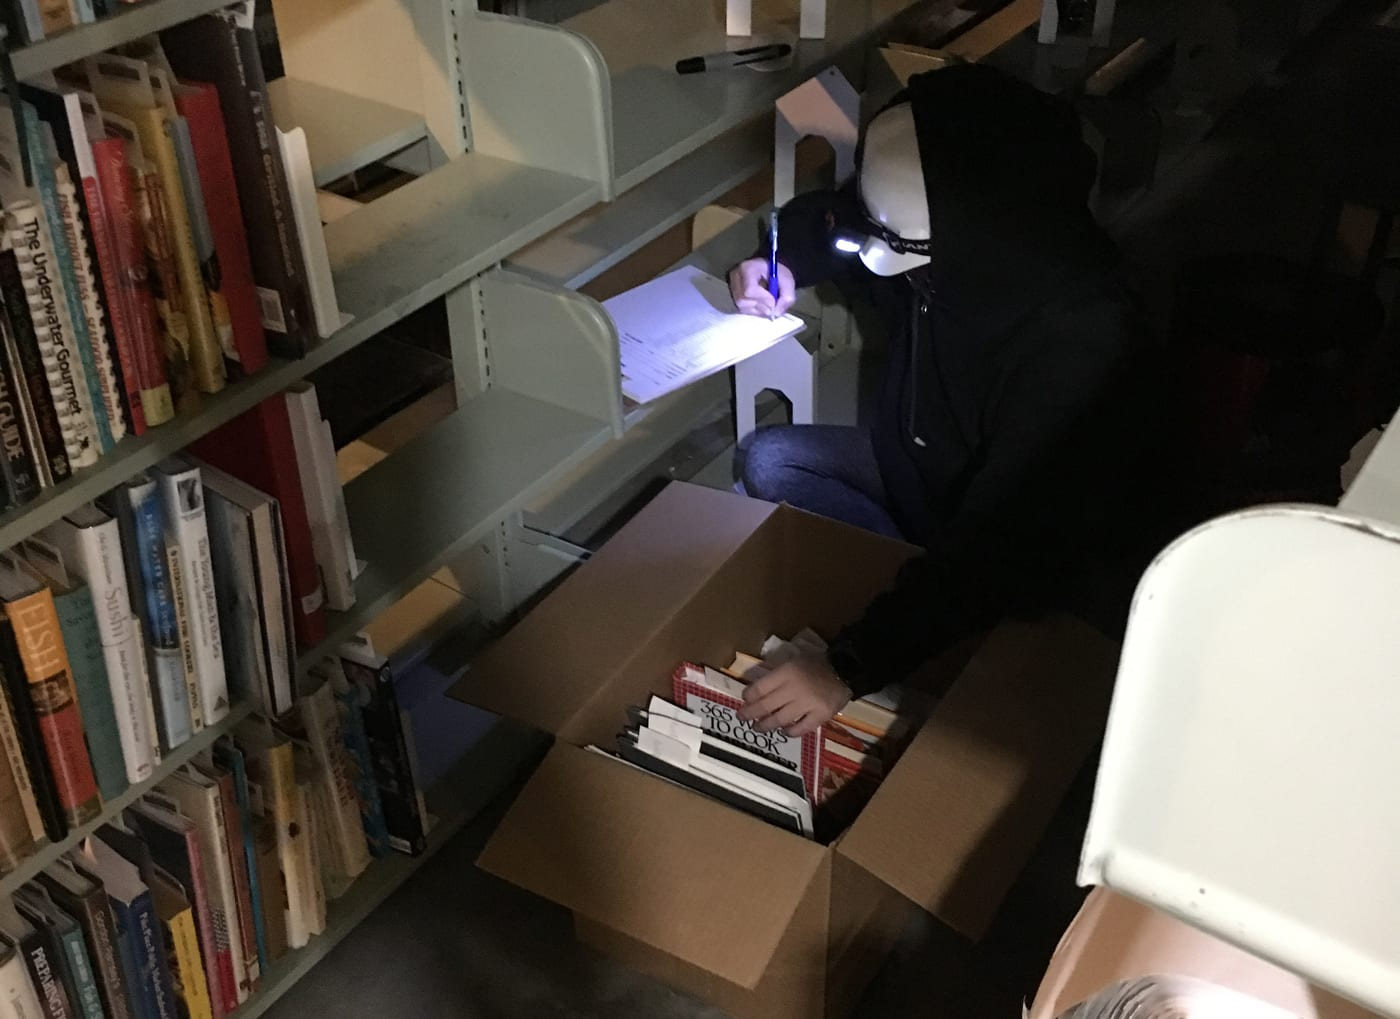 Next to a long row of bookshelves, a worker wearing a black hooded jacket and a headlamp over a white construction hat kneels while placing a cookbook in a box with one hand and taking notes with the other.